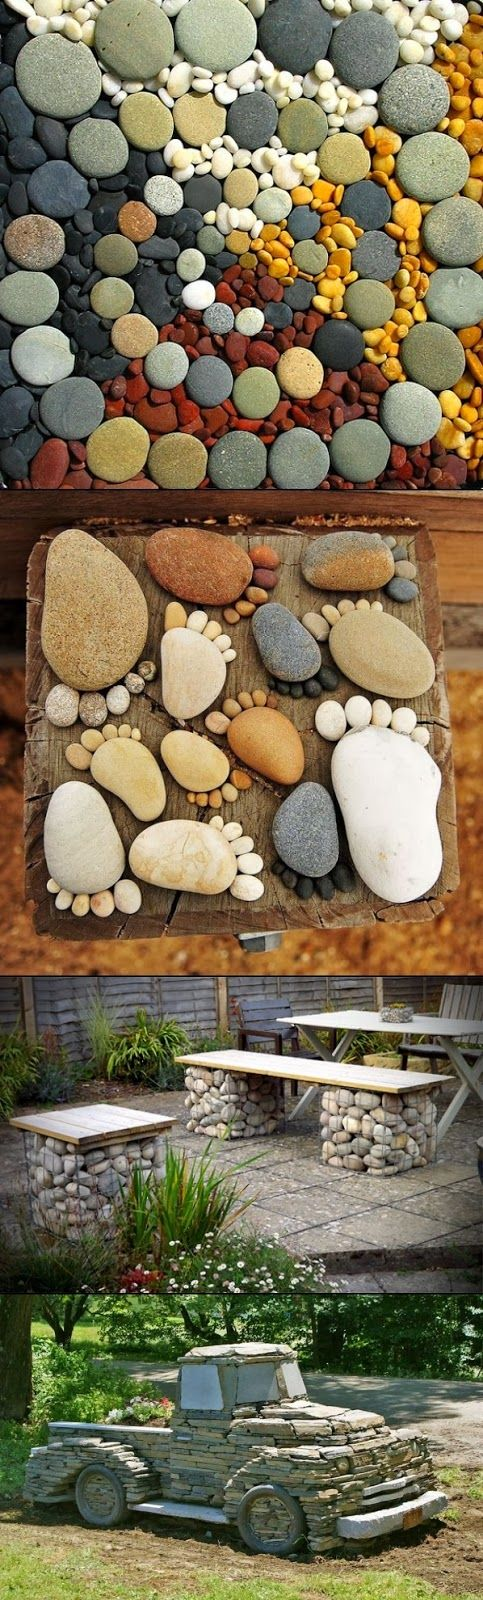 Take stones, rocks, pebbles you find in the garden and turn them into these beautiful ideas*****Follow our unique garden themed boards at www.pinterest.com/earthwormtec *****Follow us on www.facebook.com/earthwormtec for great organic gardening tips #repurpose #garden